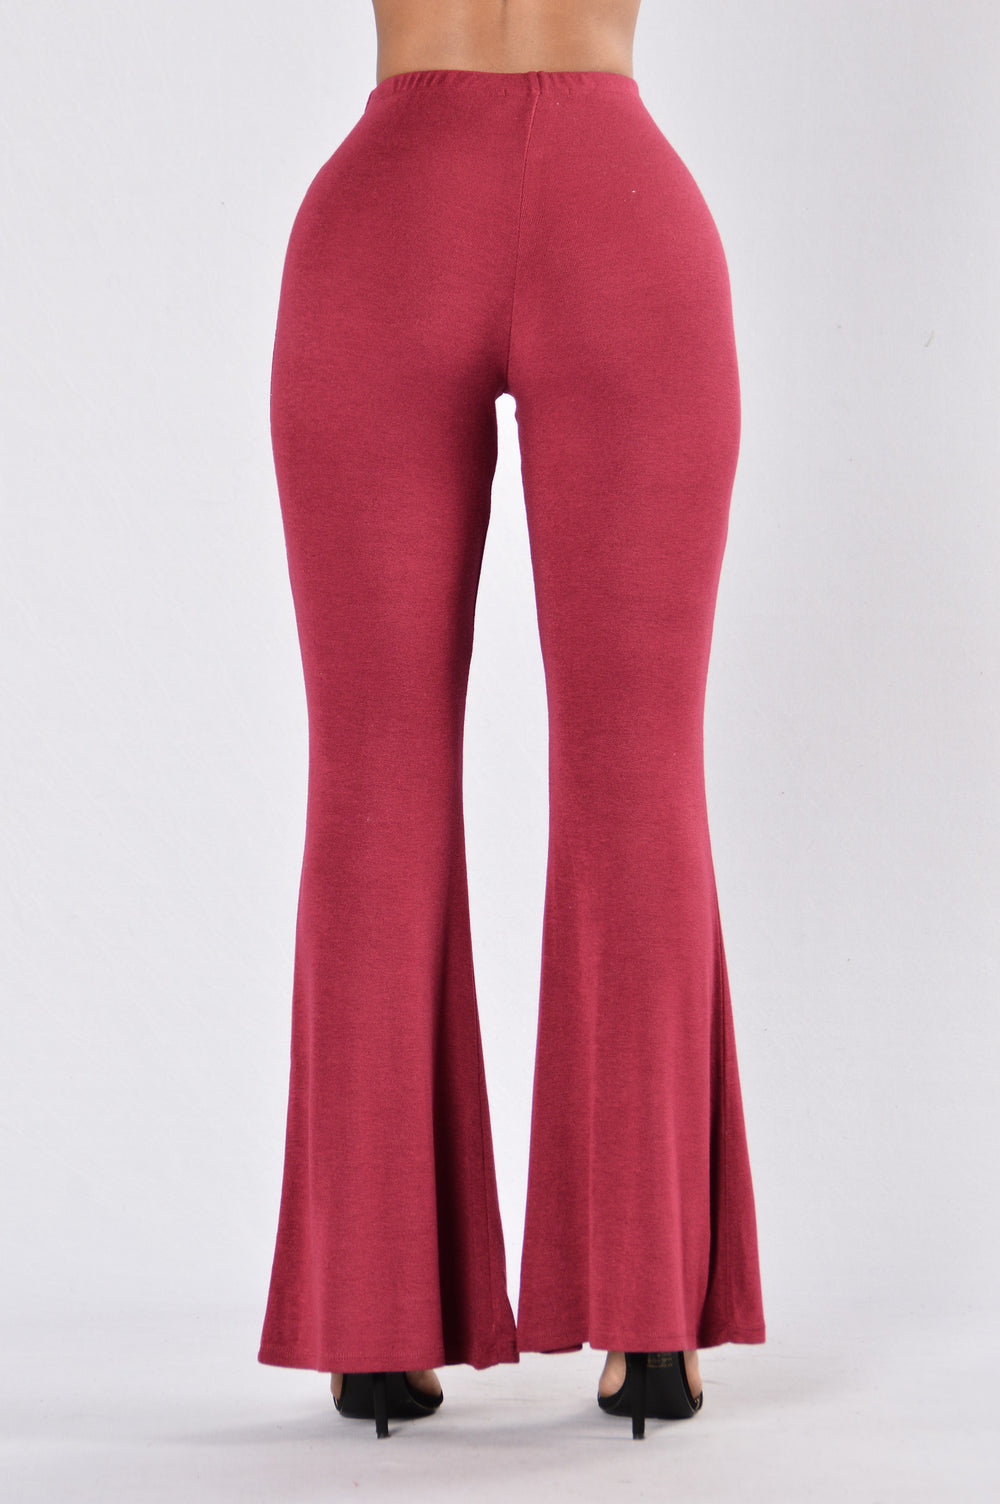 Permanent Vacation Pants - Burgundy